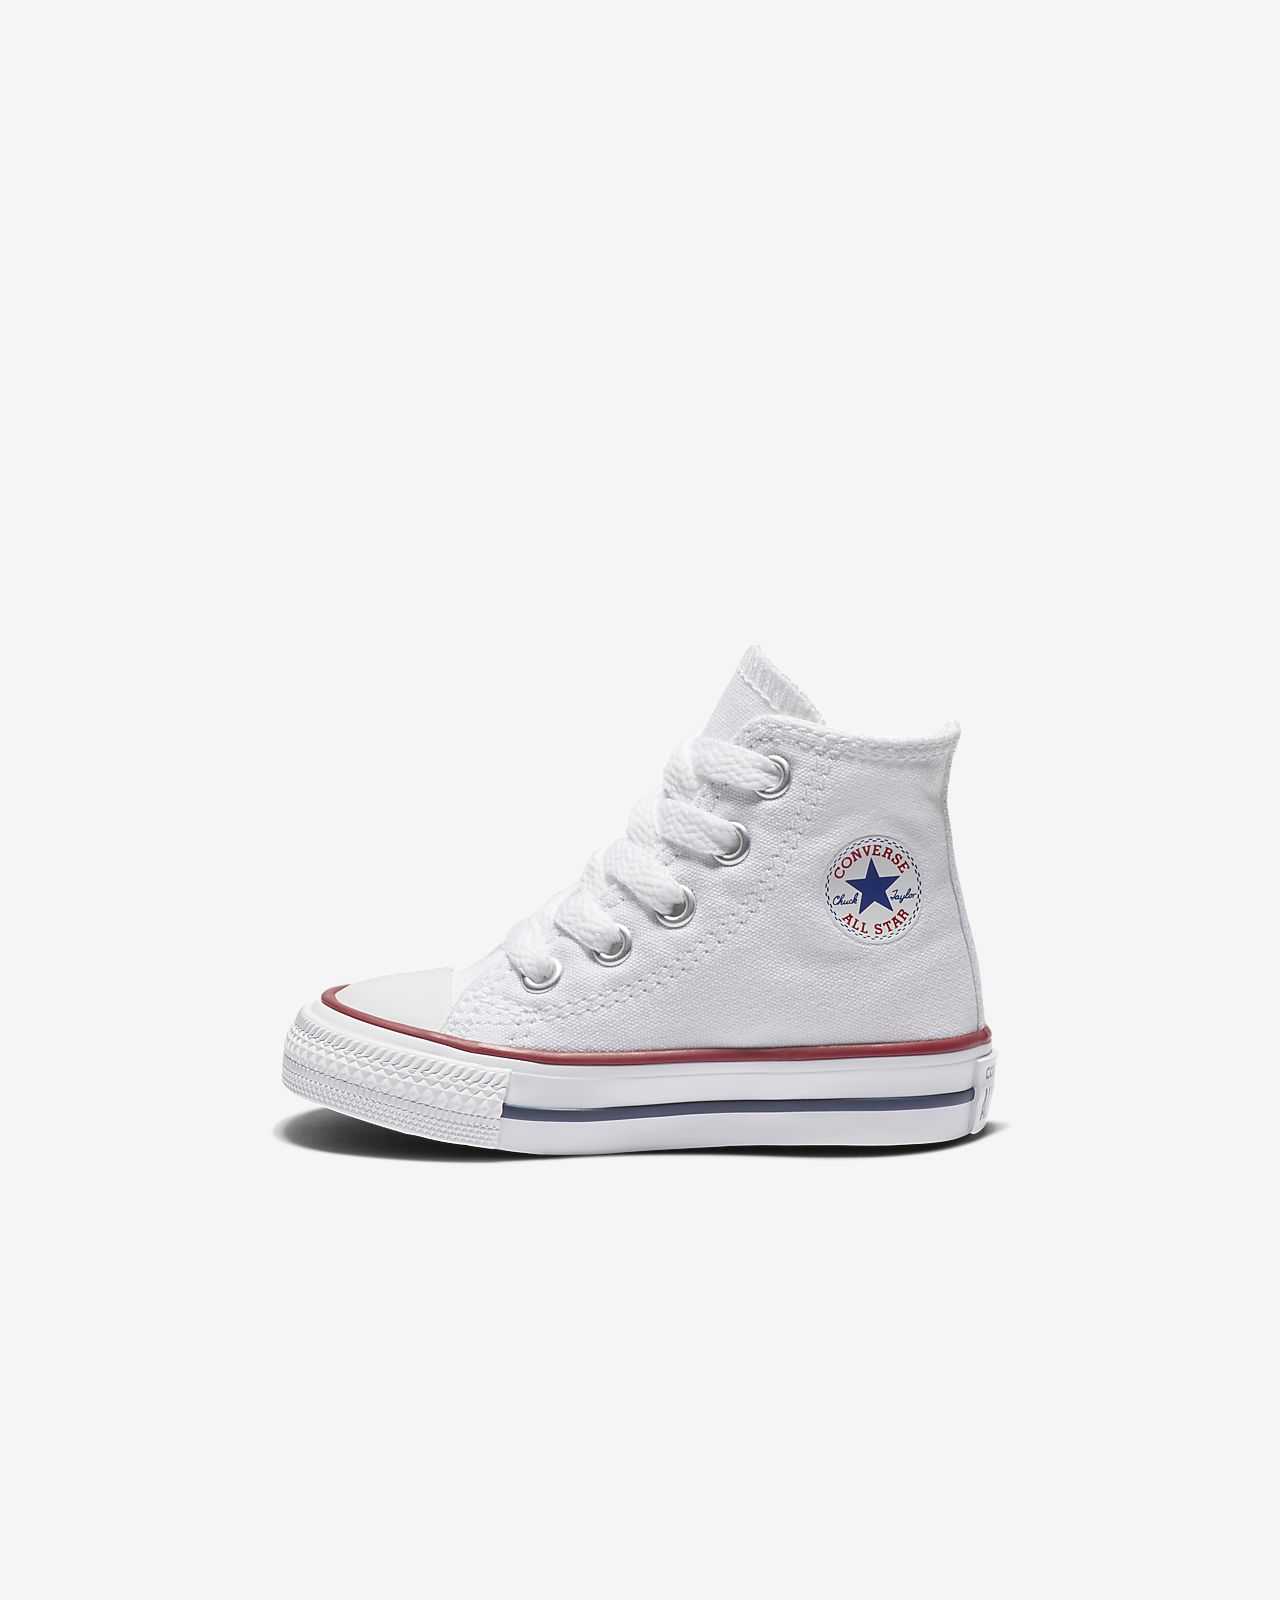 599af77b72b9 Converse Chuck Taylor All Star High Top (2c-10c) Infant Toddler Shoe ...